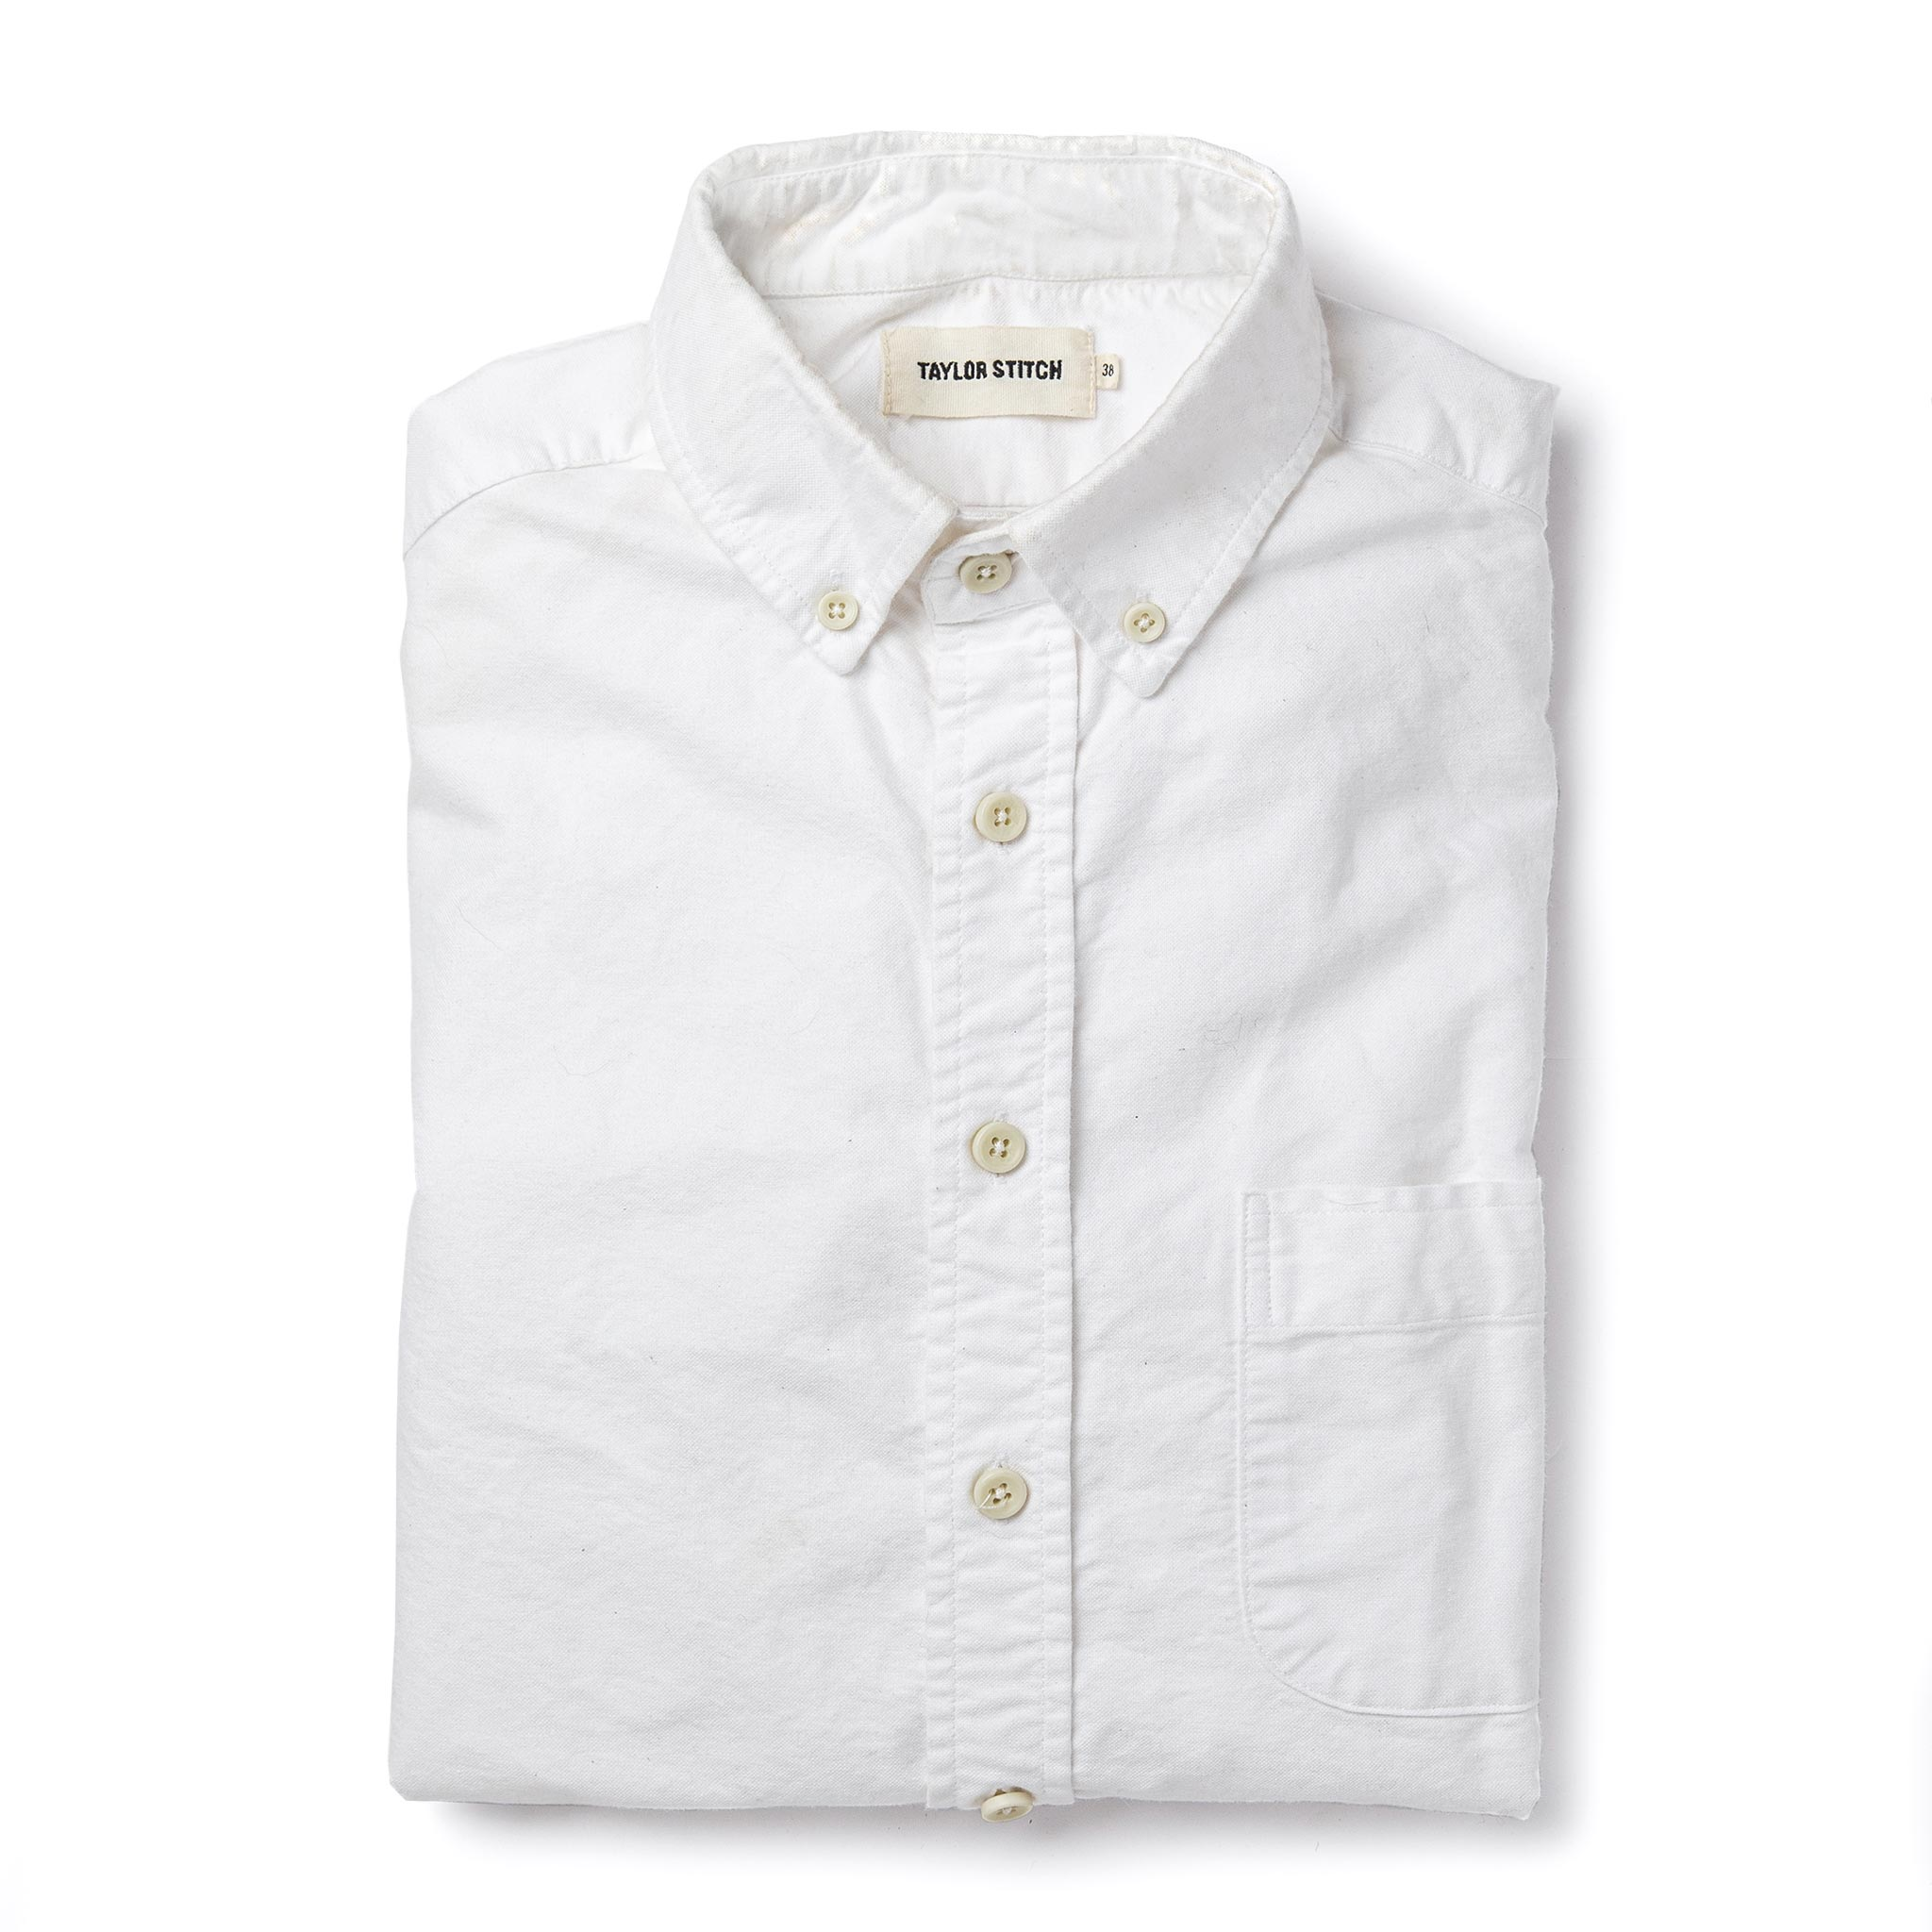 Taylor Stitch Jack Shirt in White Everyday Oxford